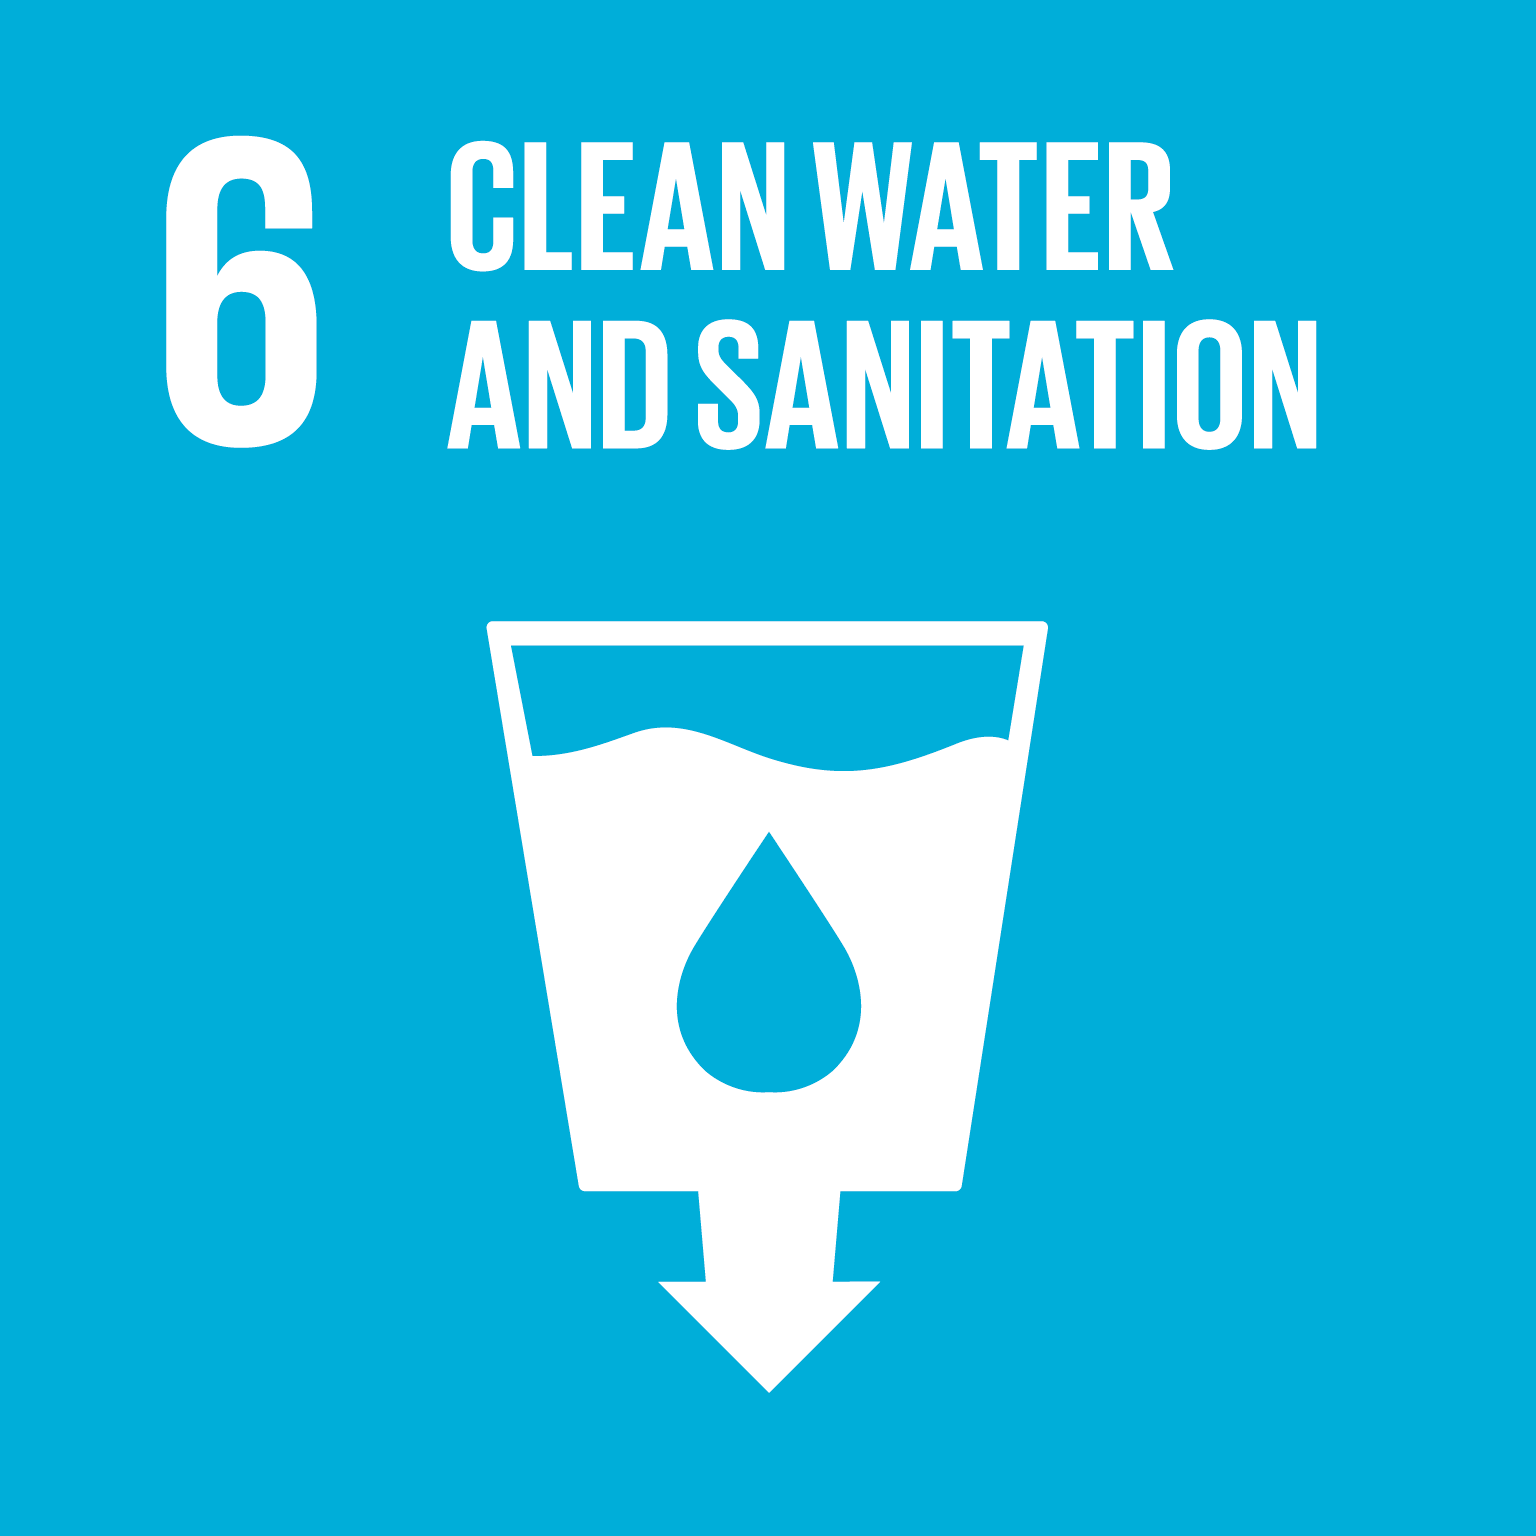 6 clean water & sanitation.png